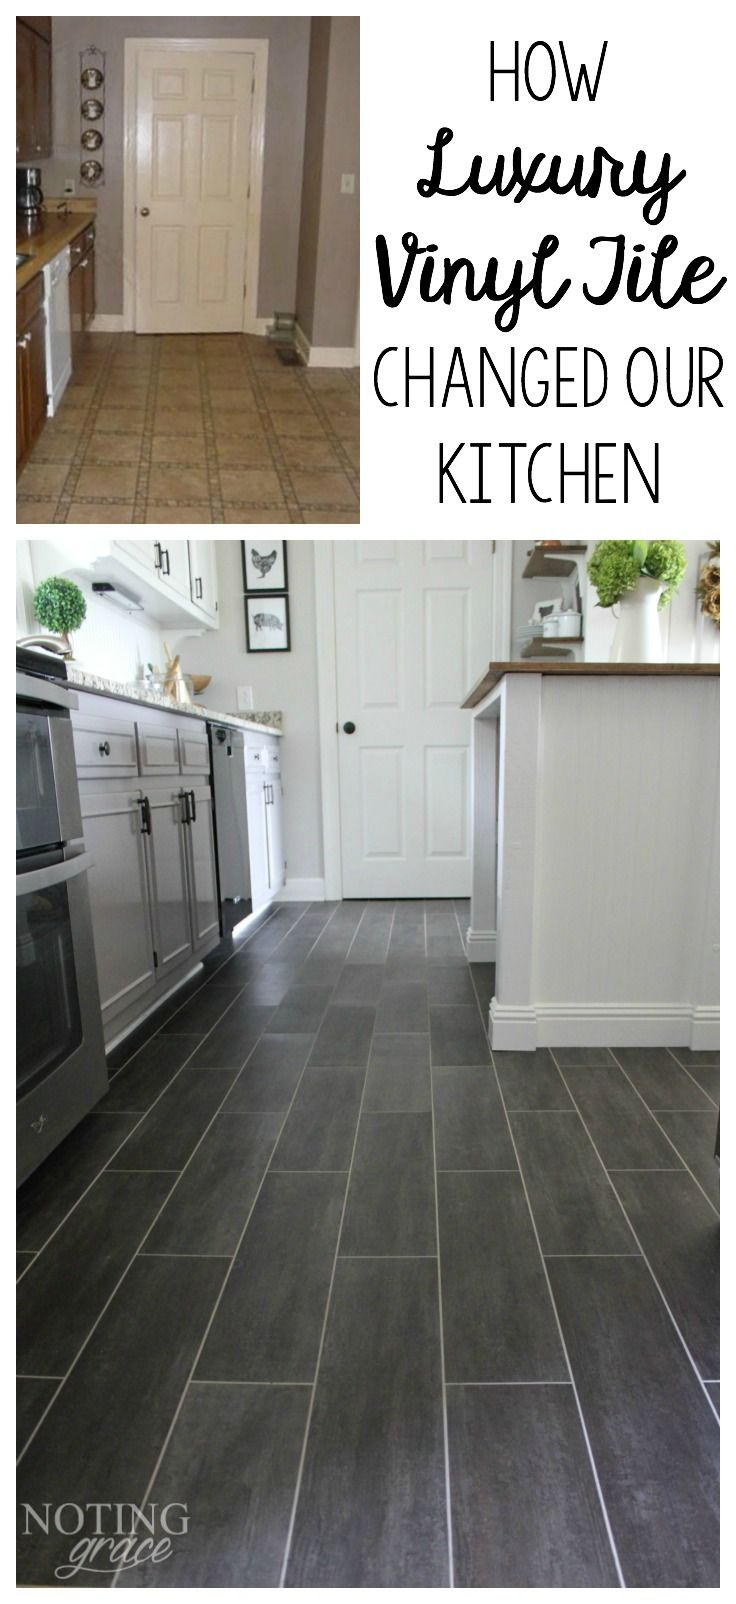 Vinyl Plank Flooring Kitchen 17 Best Ideas About Vinyl Flooring On Pinterest Wood Flooring